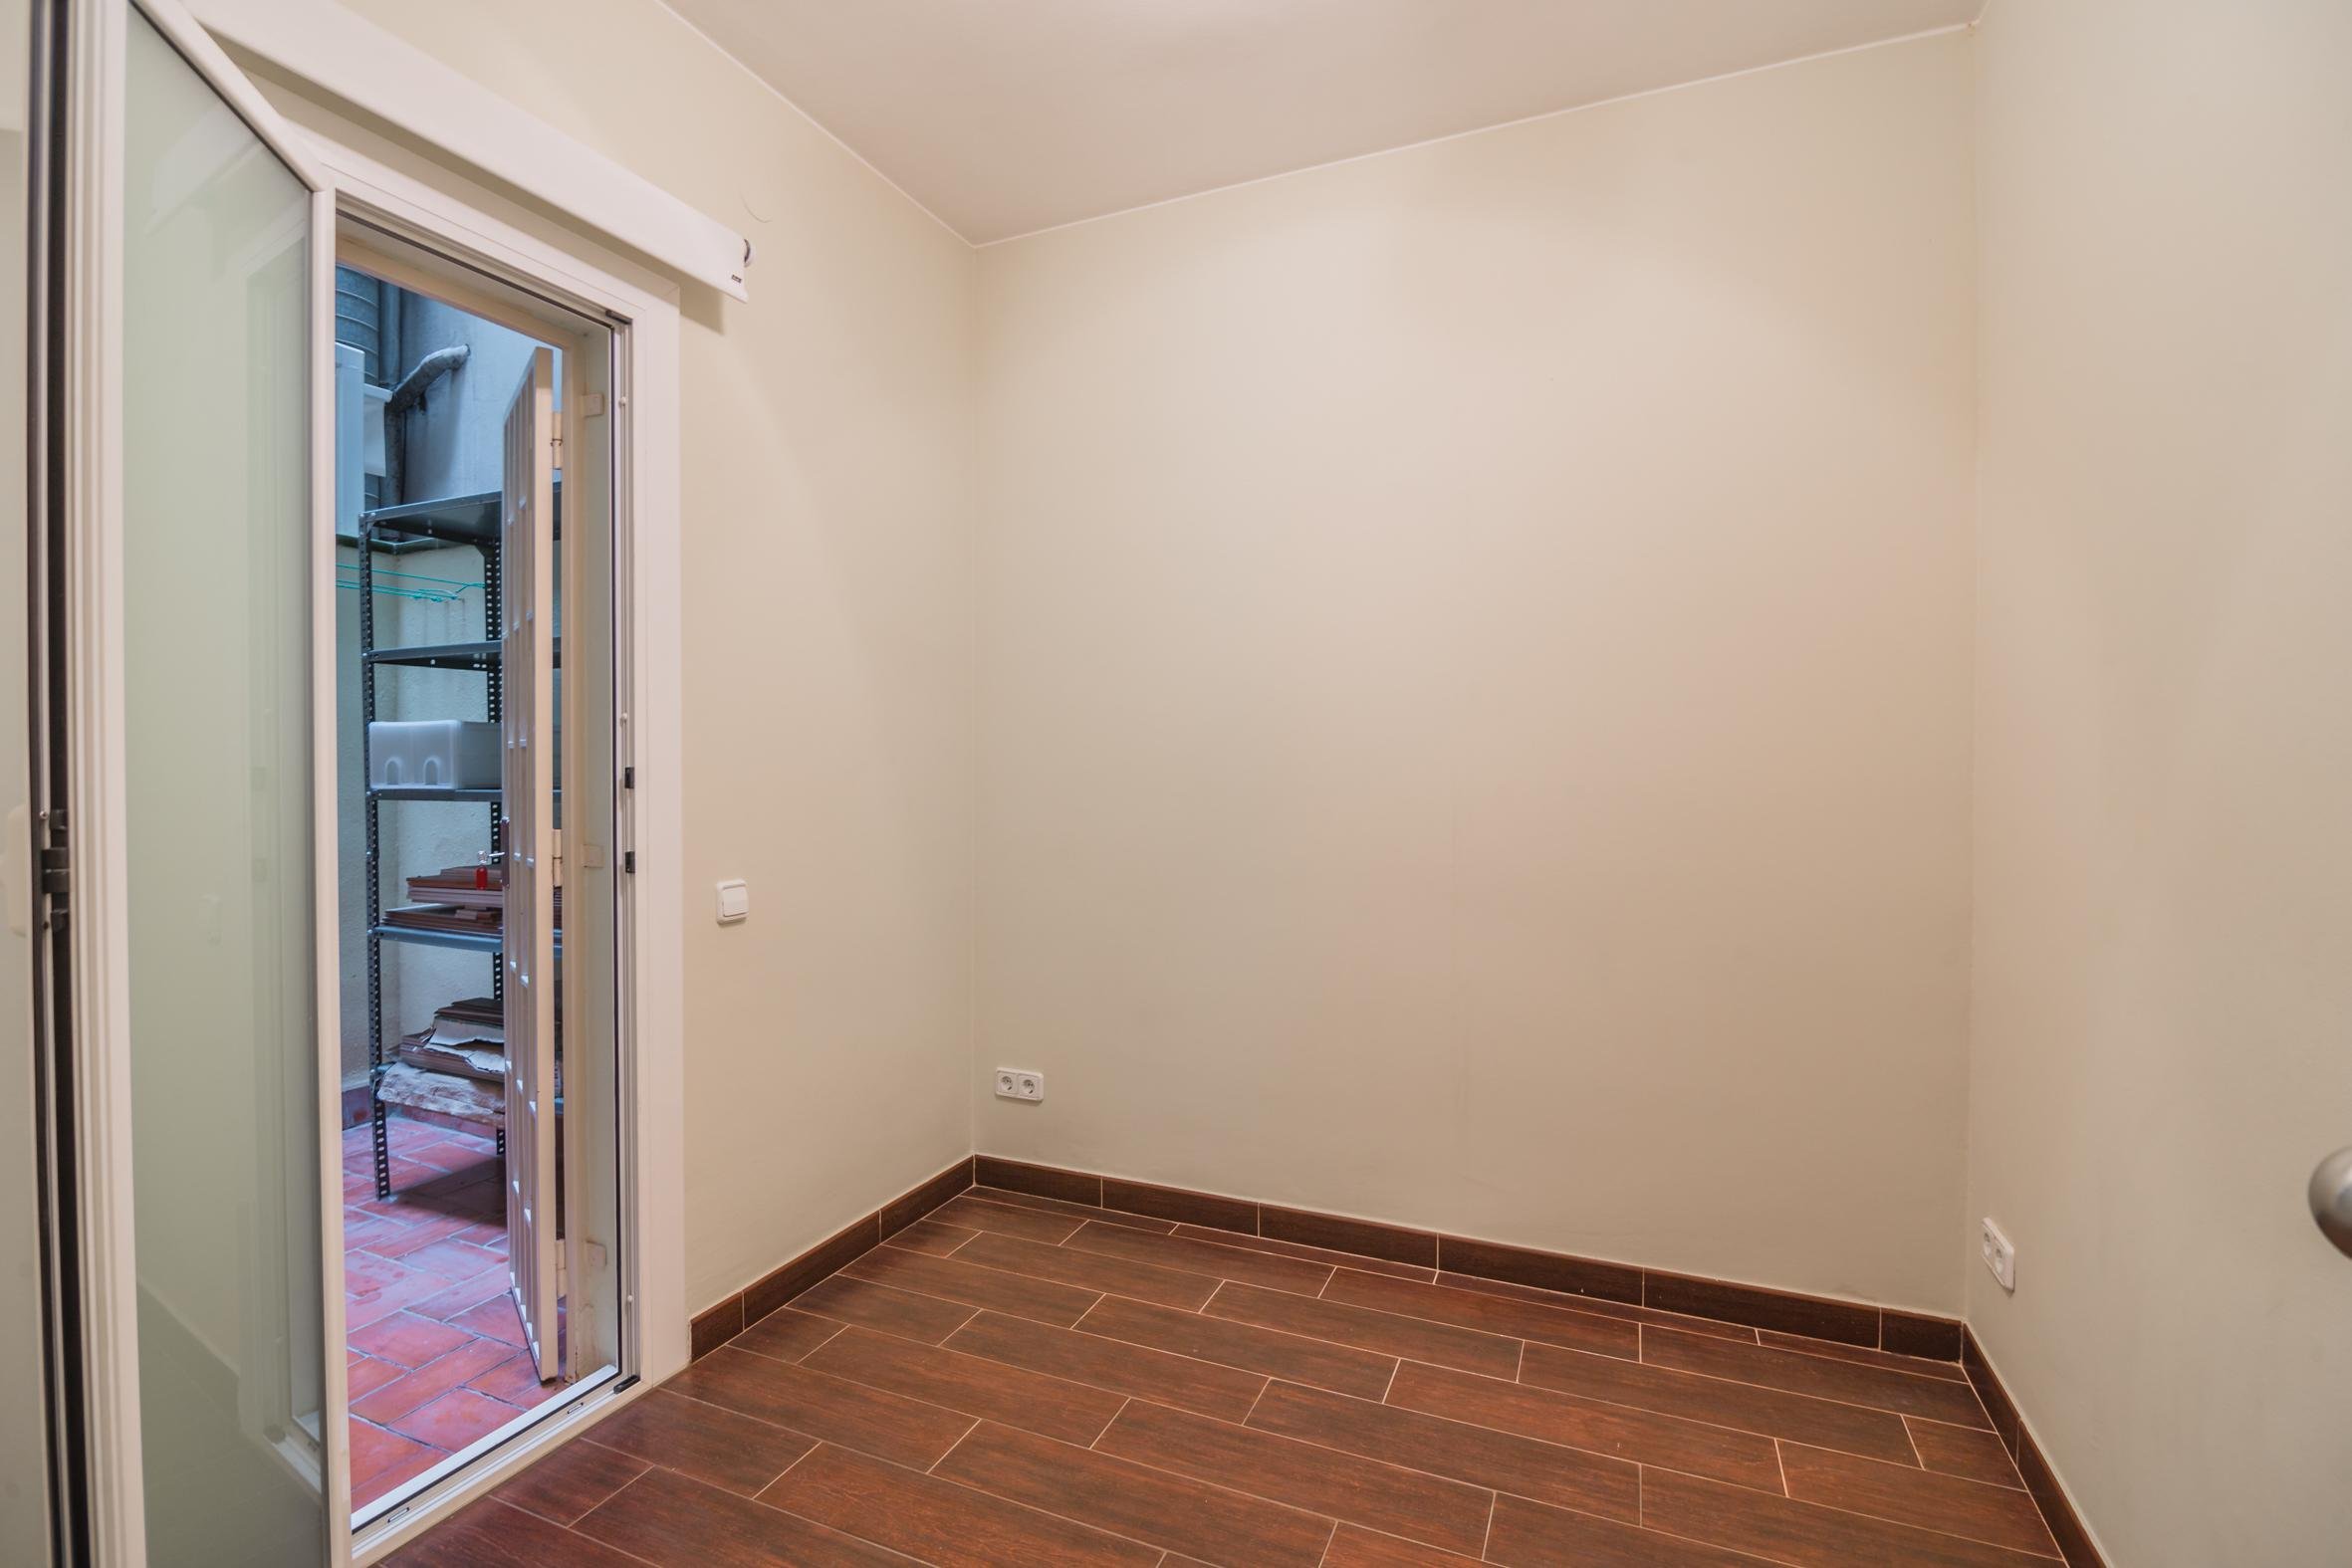 246902 Flat for sale in Les Corts, Pedralbes 20